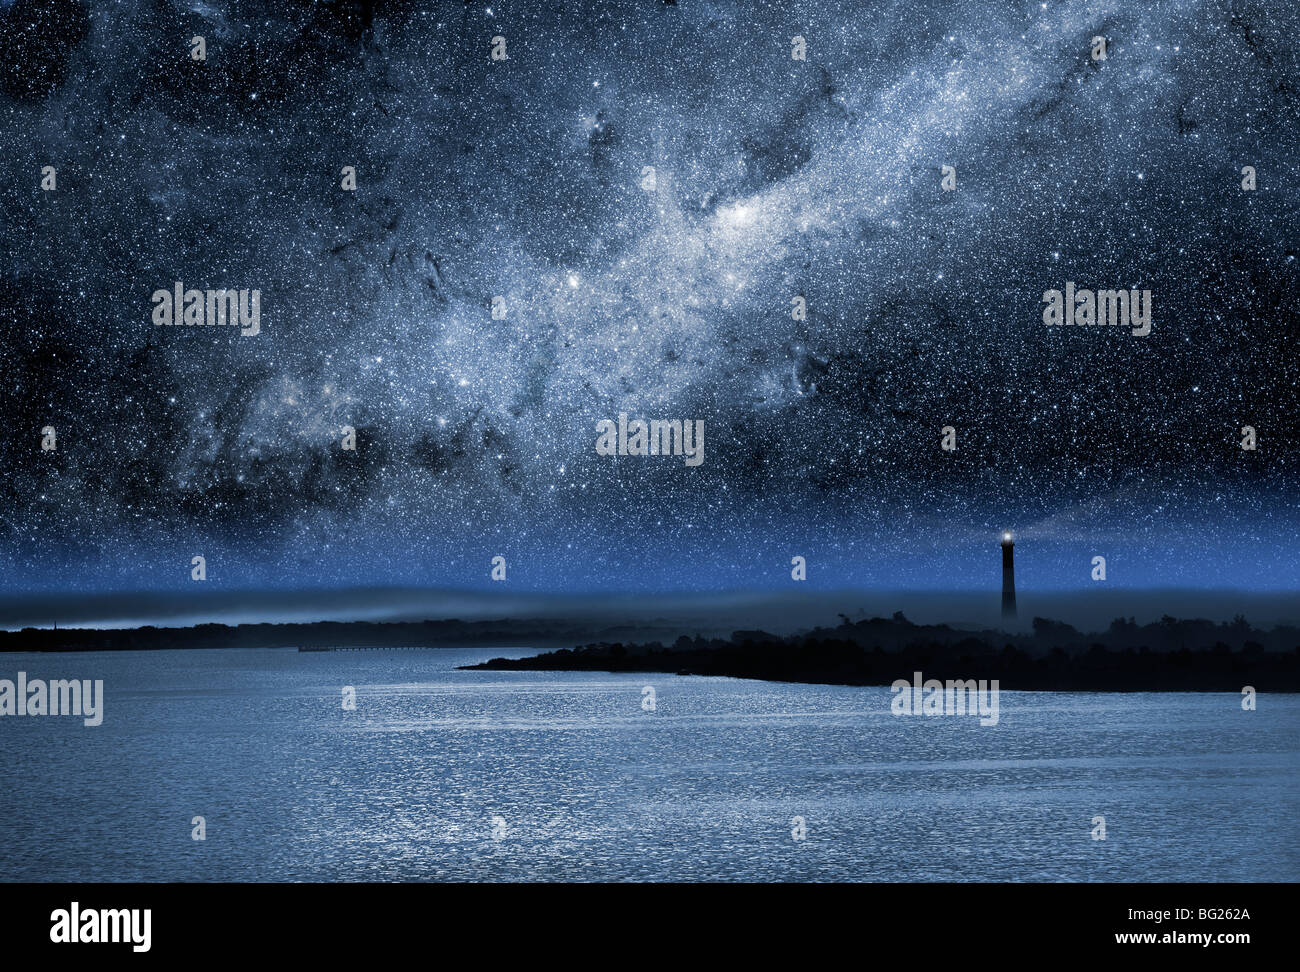 The Fire Island Light house near the western end of Fire Island at night with a bright Milky Way overhead. - Stock Image